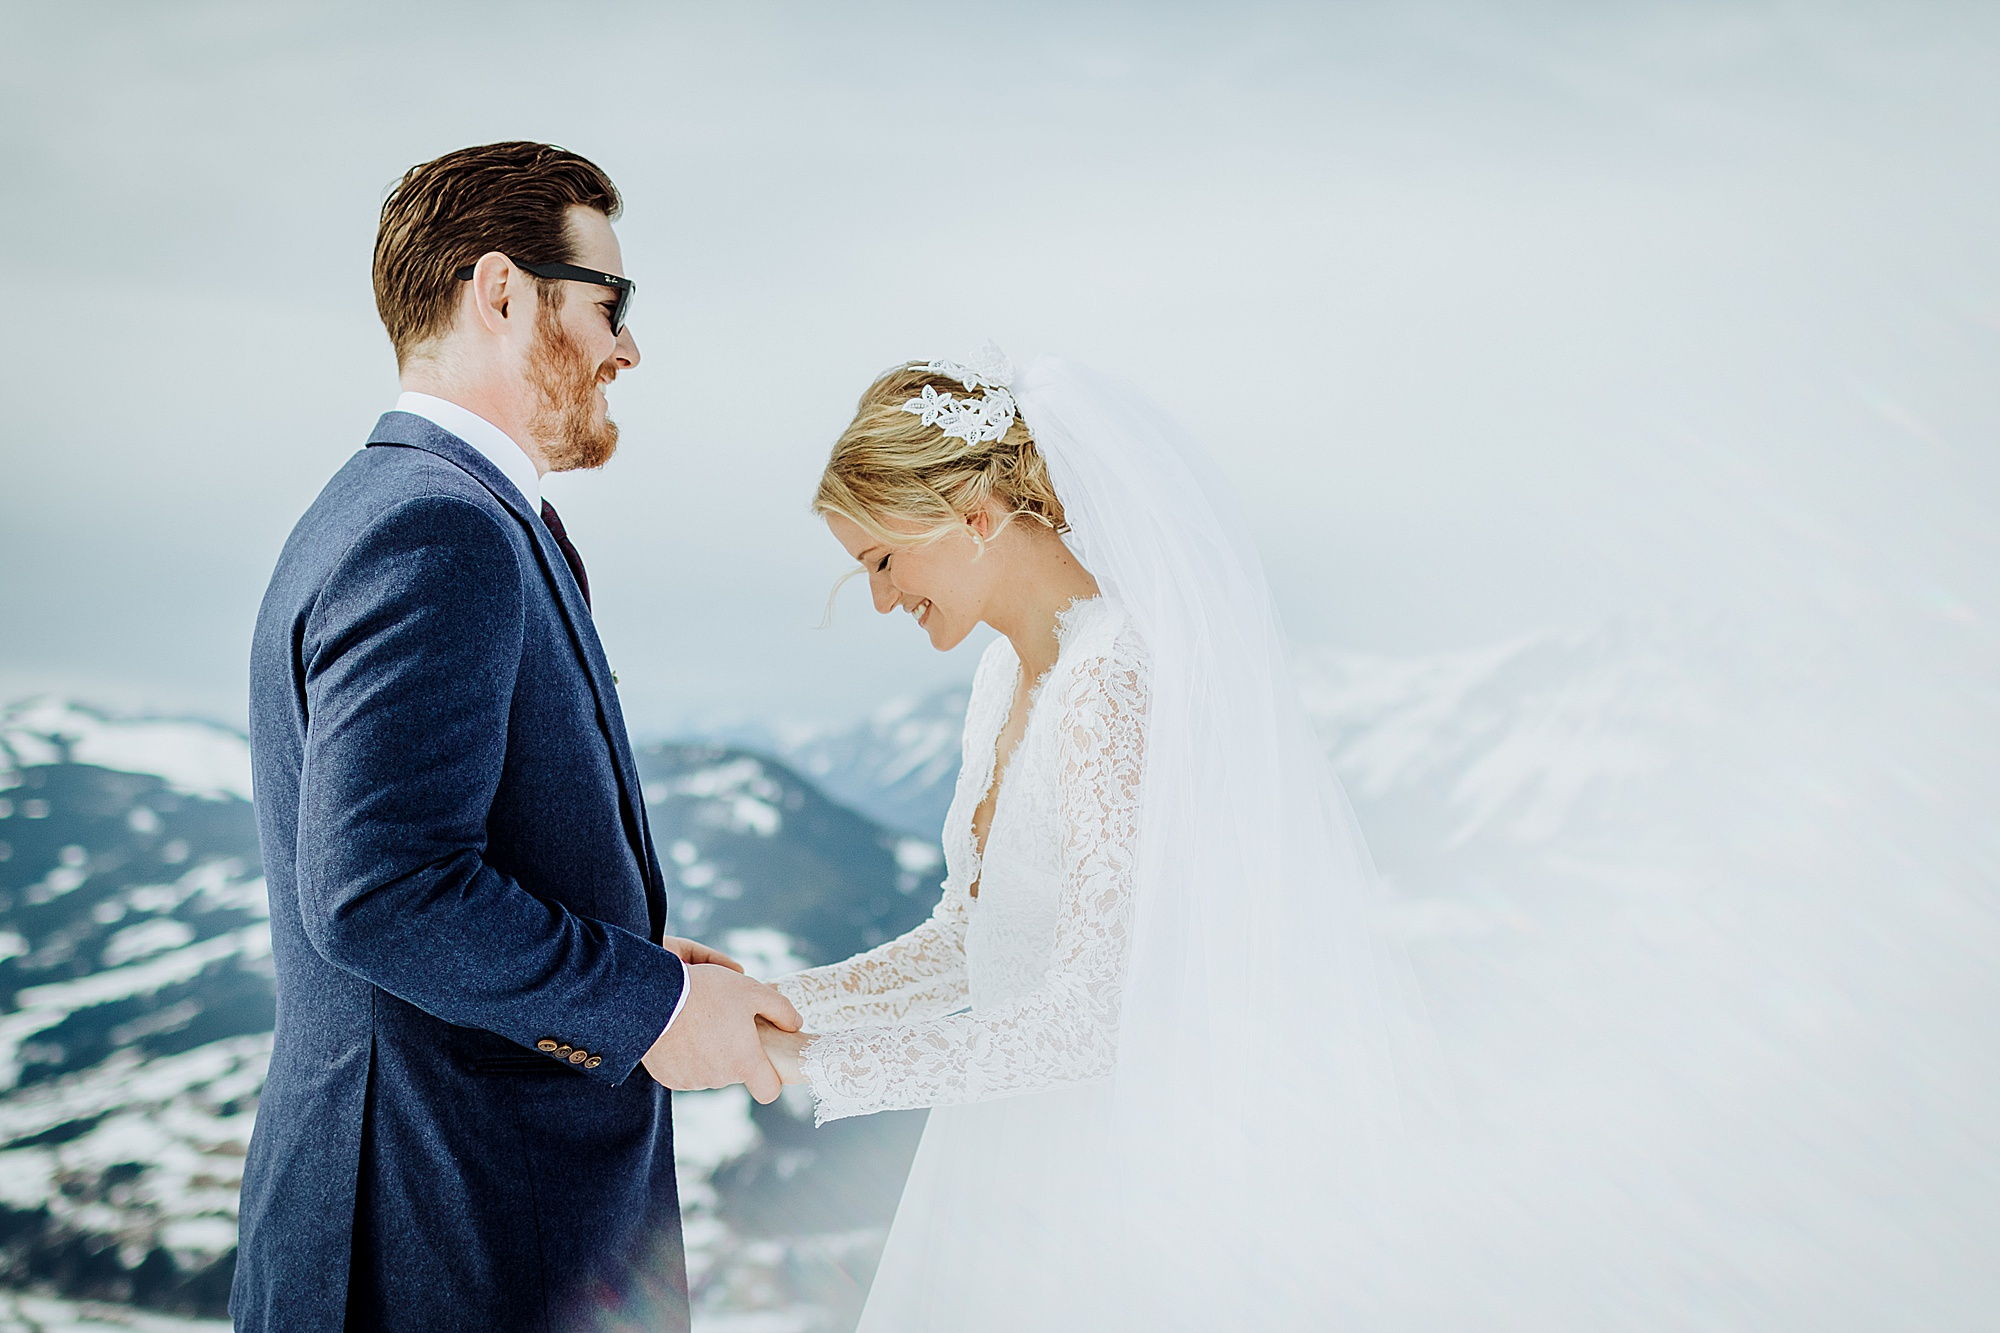 Are Adventure Weddings In Europe Legally Binding?